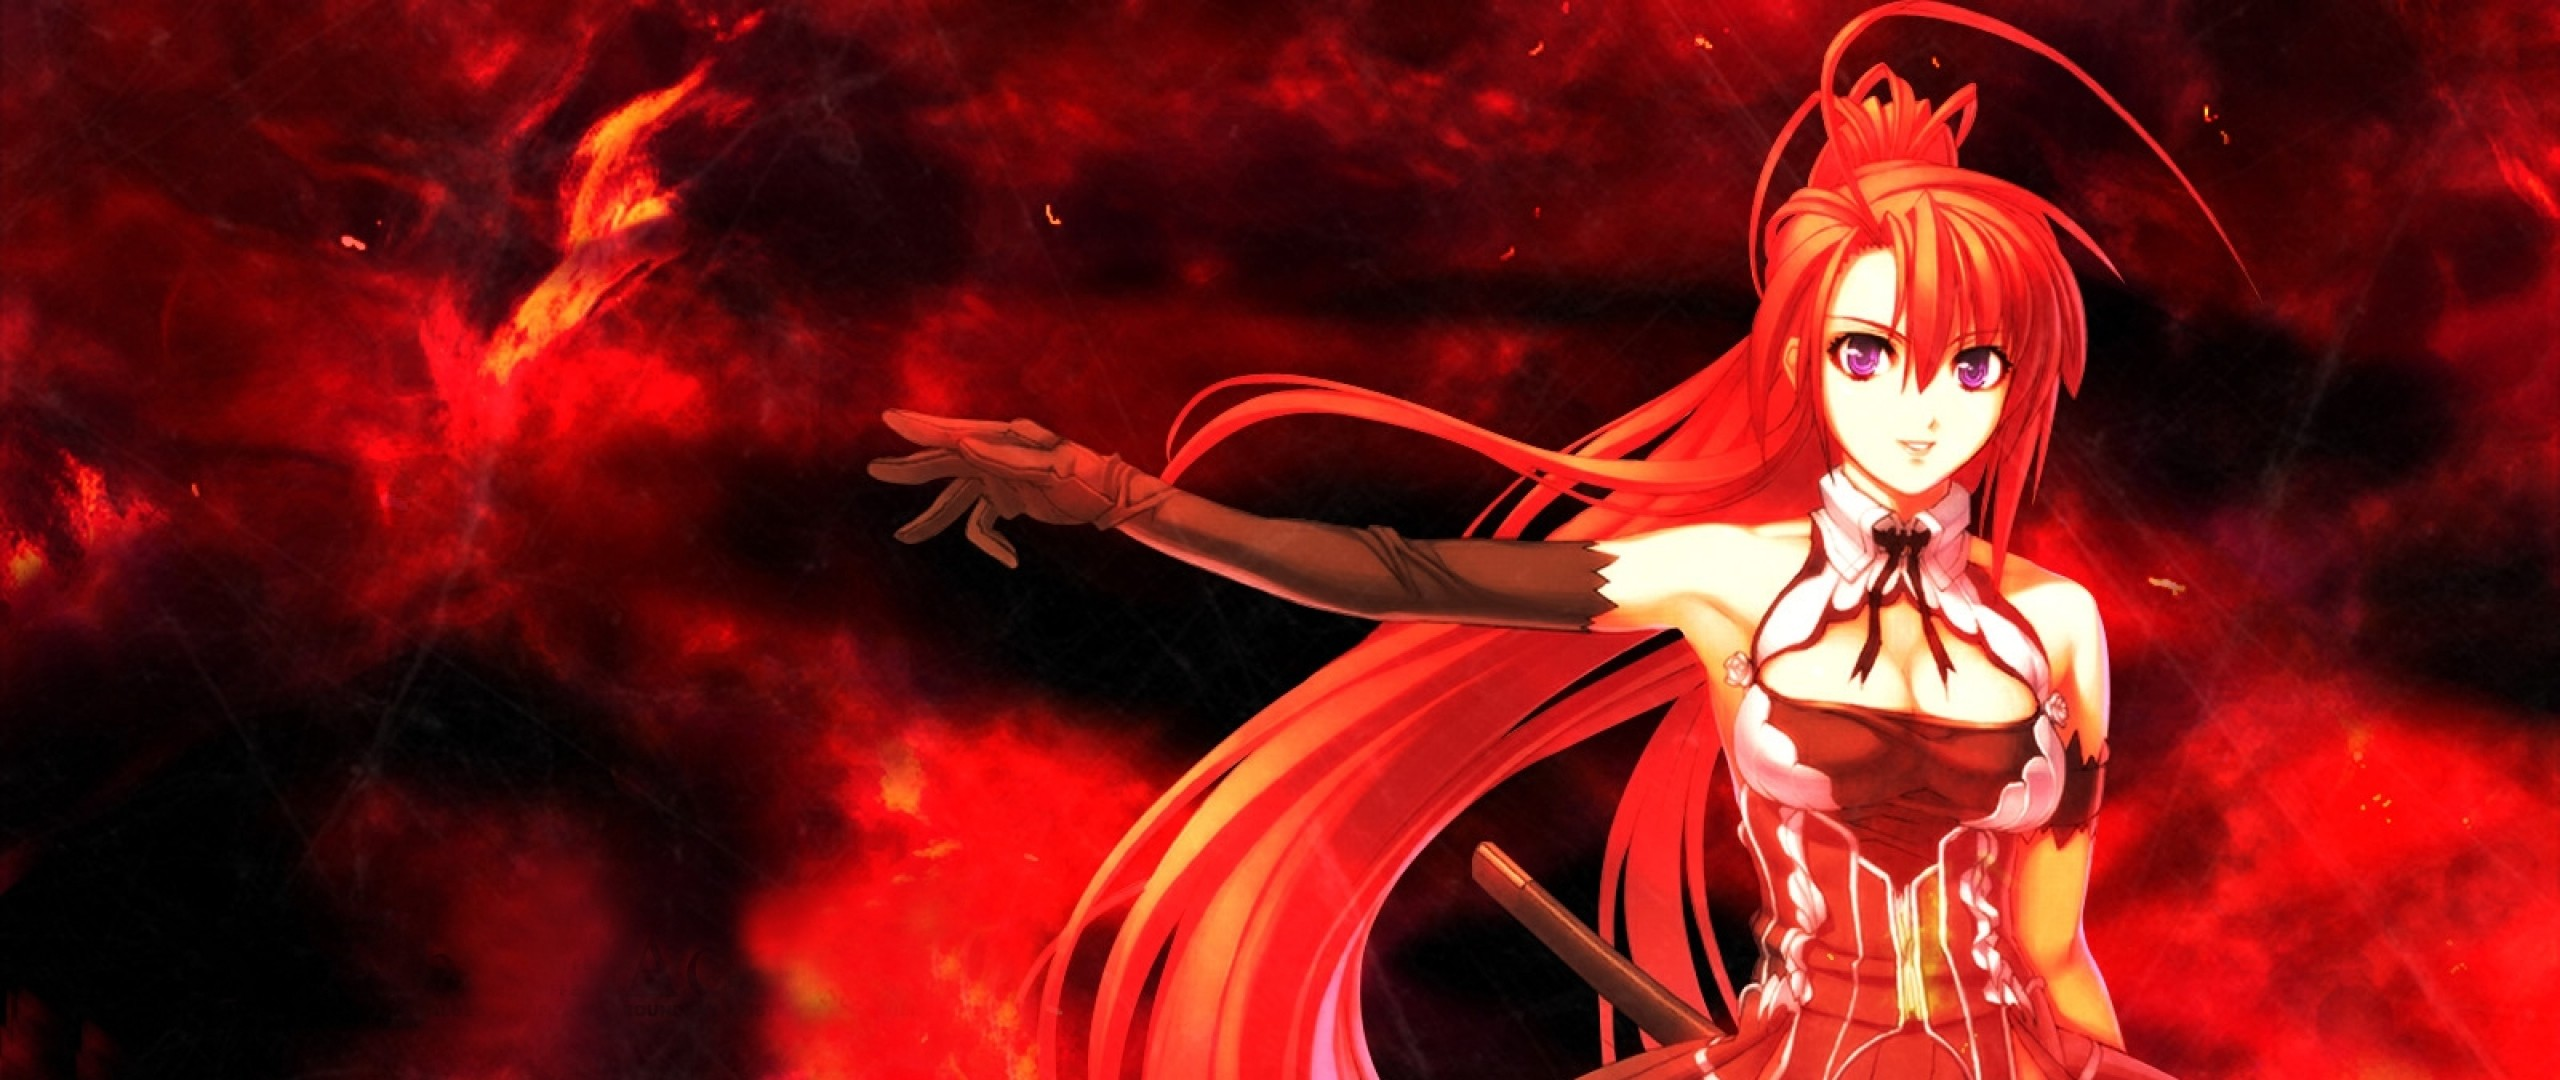 Fall Anime Wallpaper Vocaloid Red Anime Wallpaper 66 Images